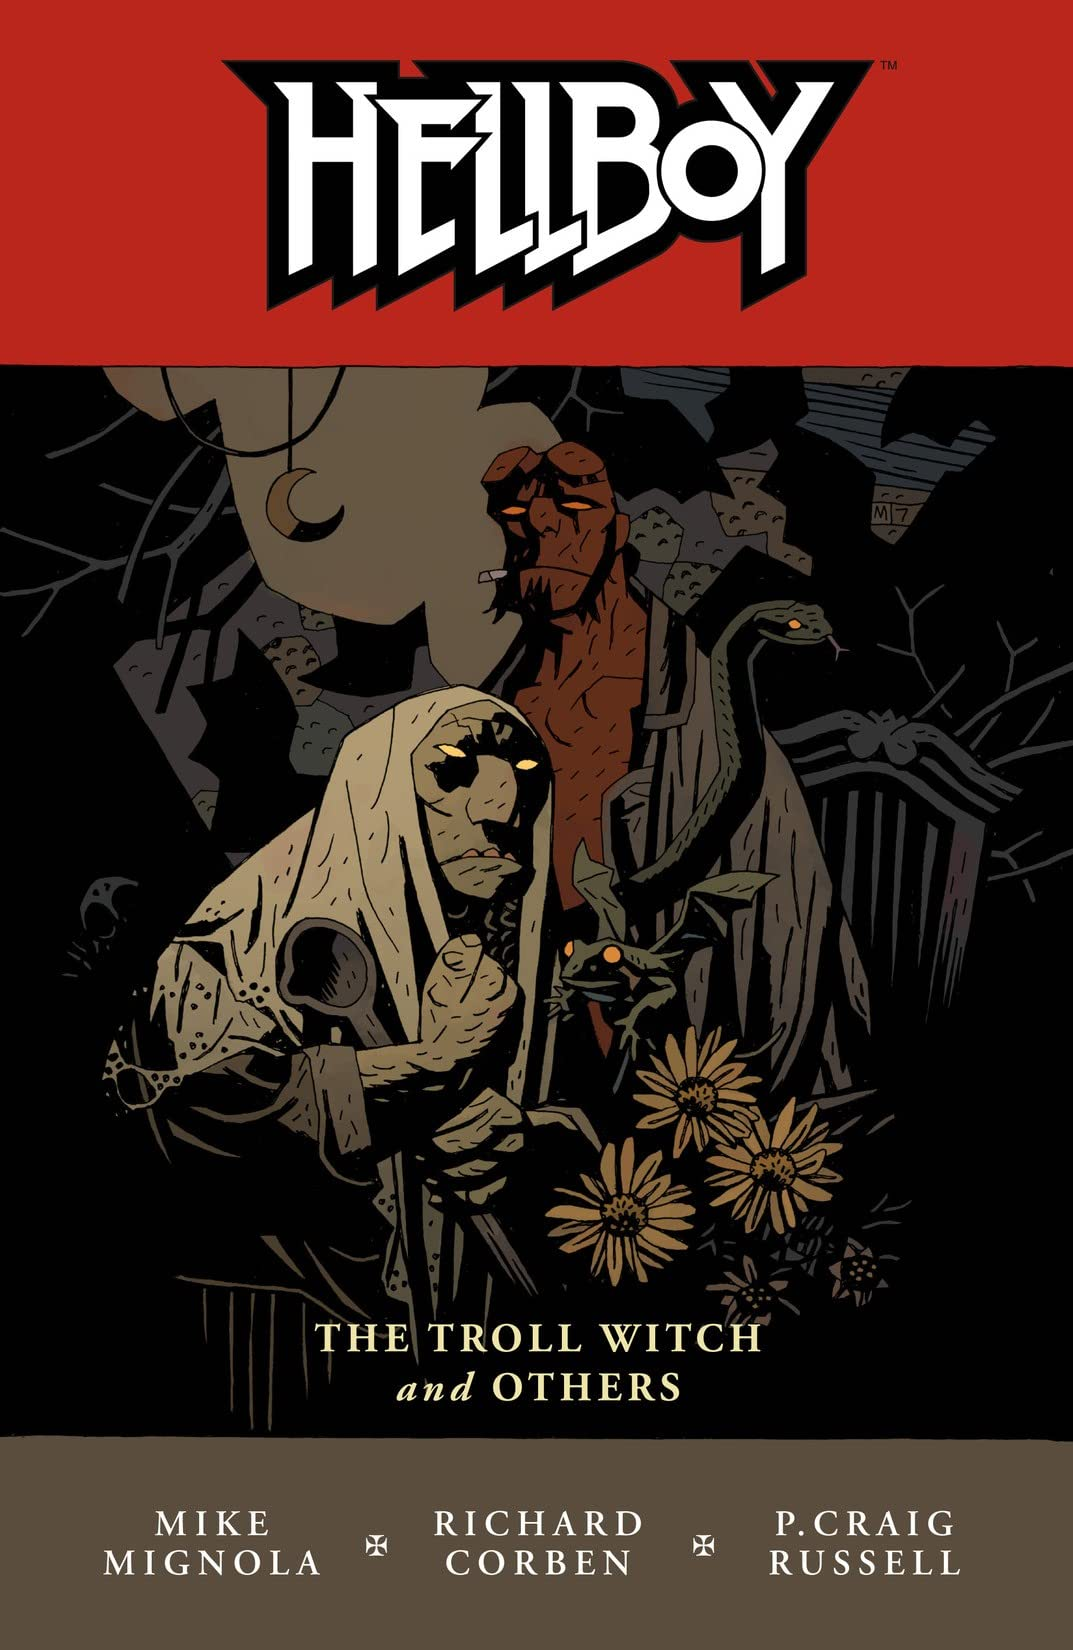 Hellboy Vol. 7: The Troll Witch and Others